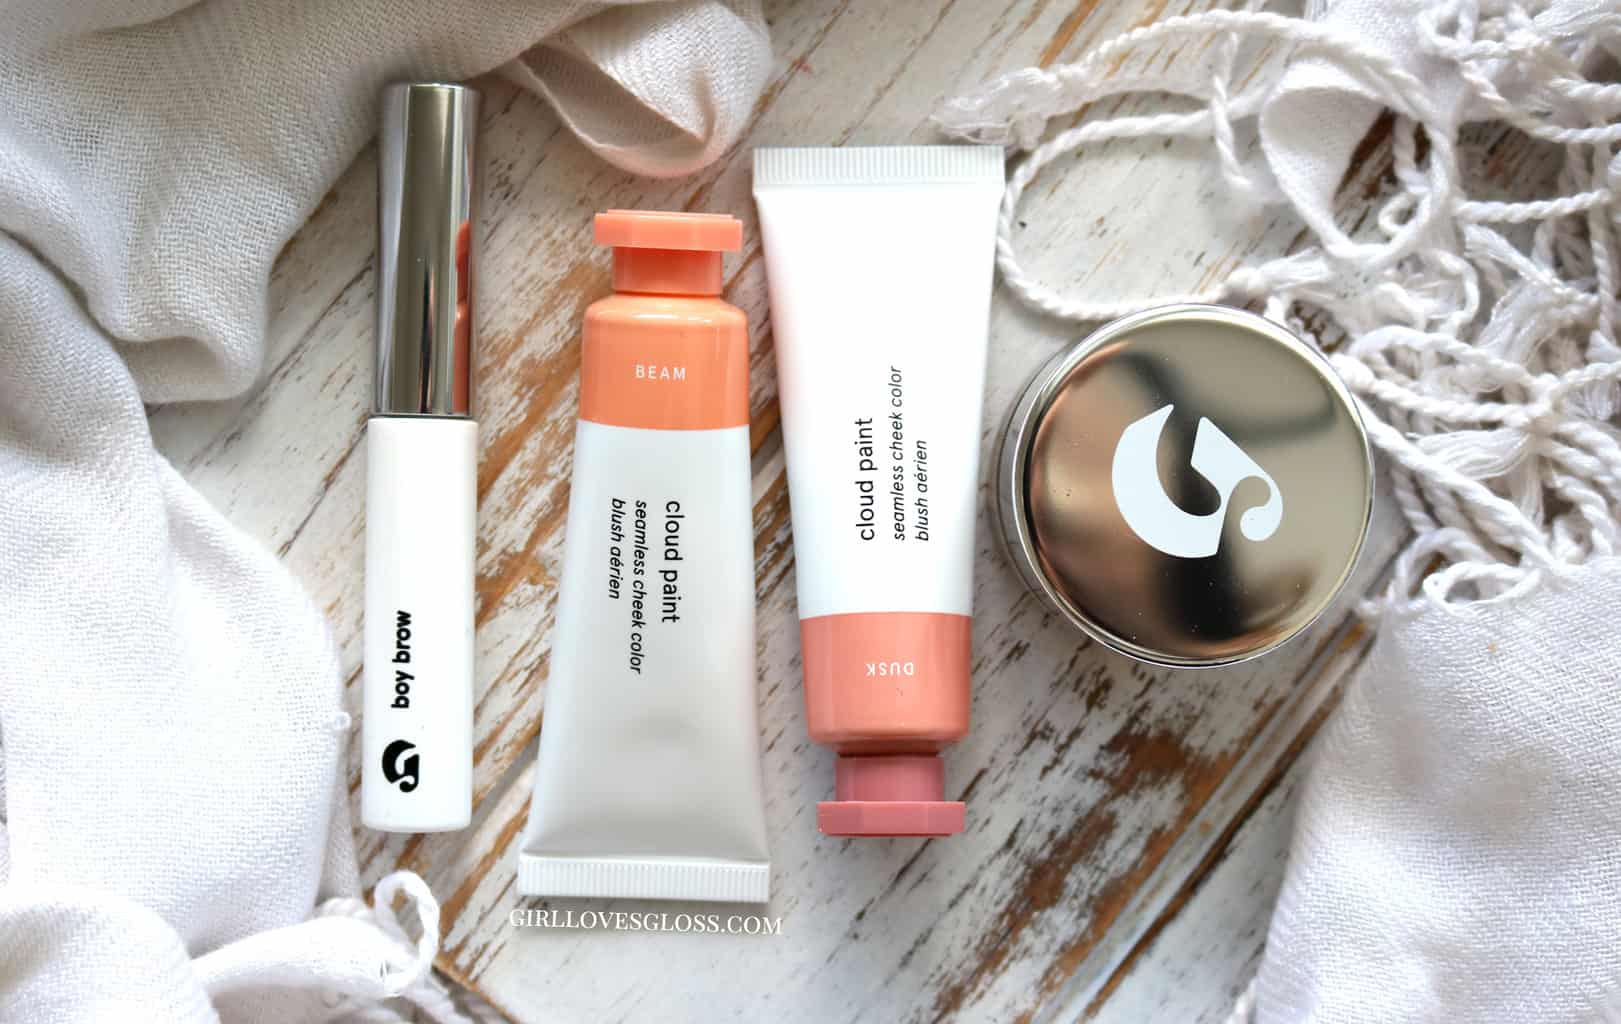 Glossier Makeup: Worth the Hype?